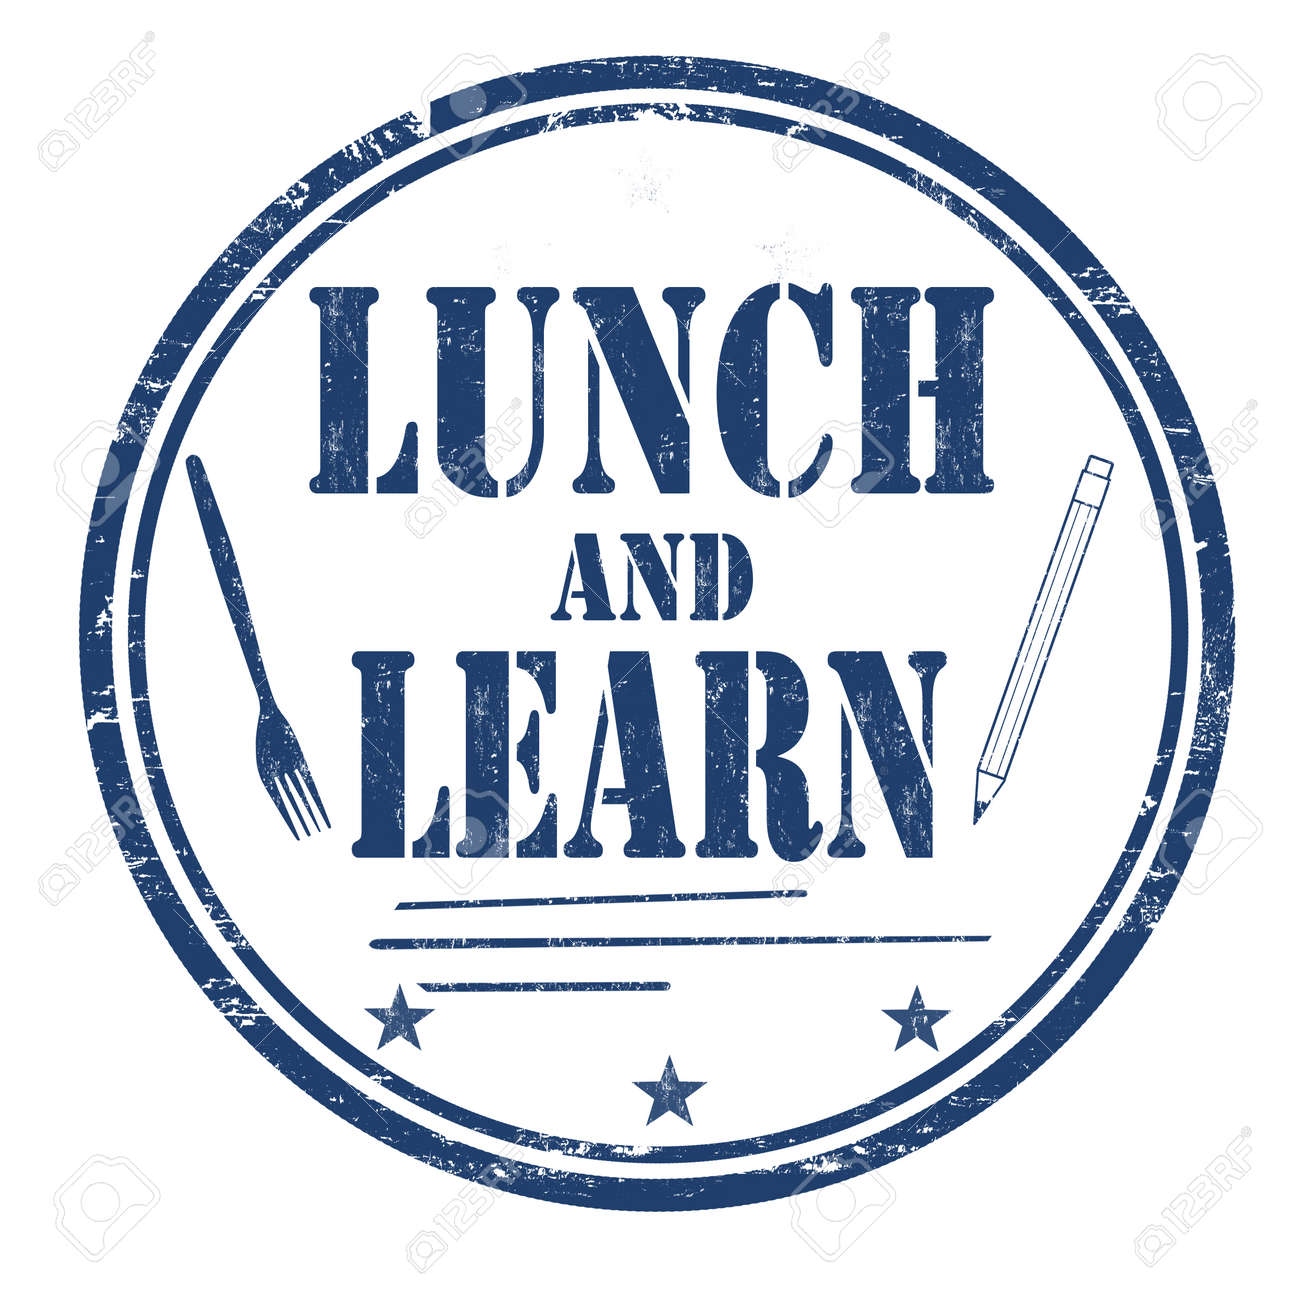 Lunch and learn grunge rubber stamp on white background, vector illustration - 93506013